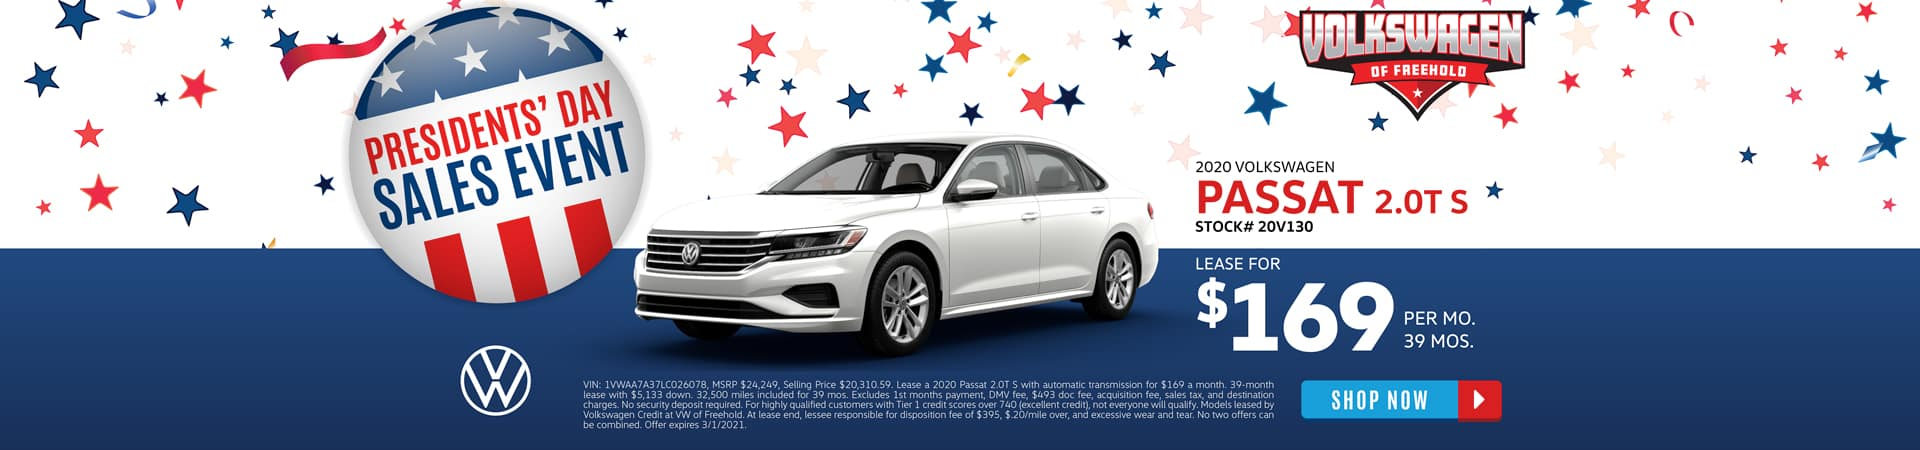 2021.01.29-VW-of-Freehold-Feb-Web-Banners-1-S50690cr_02